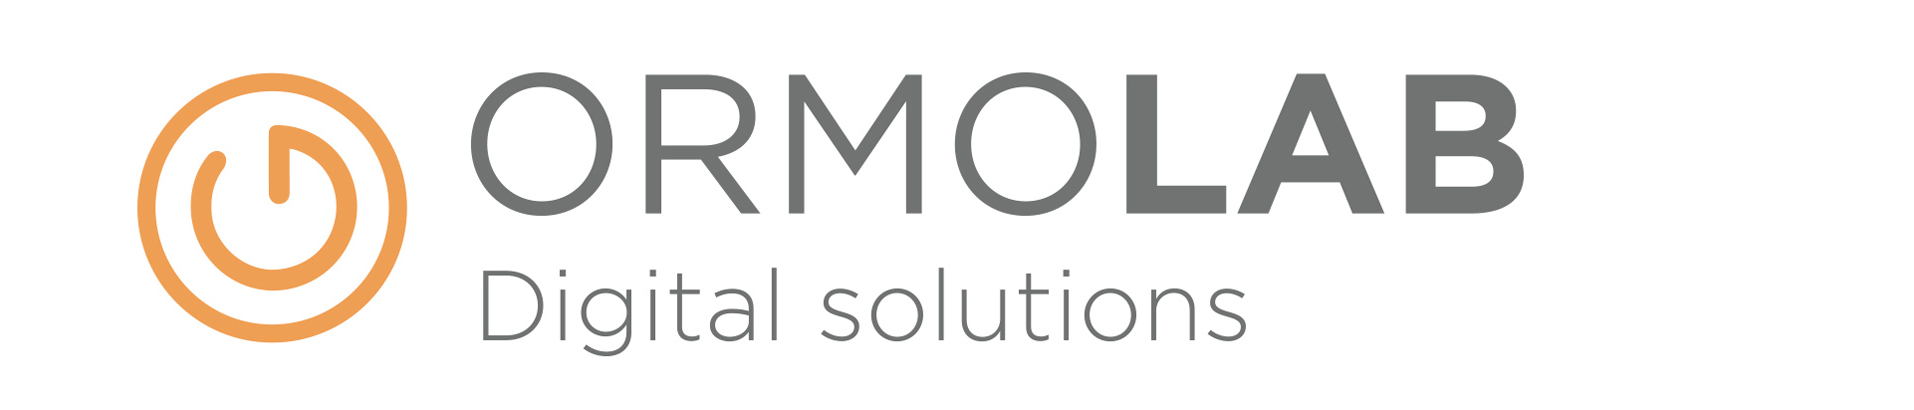 Ormolab | Digital solutions